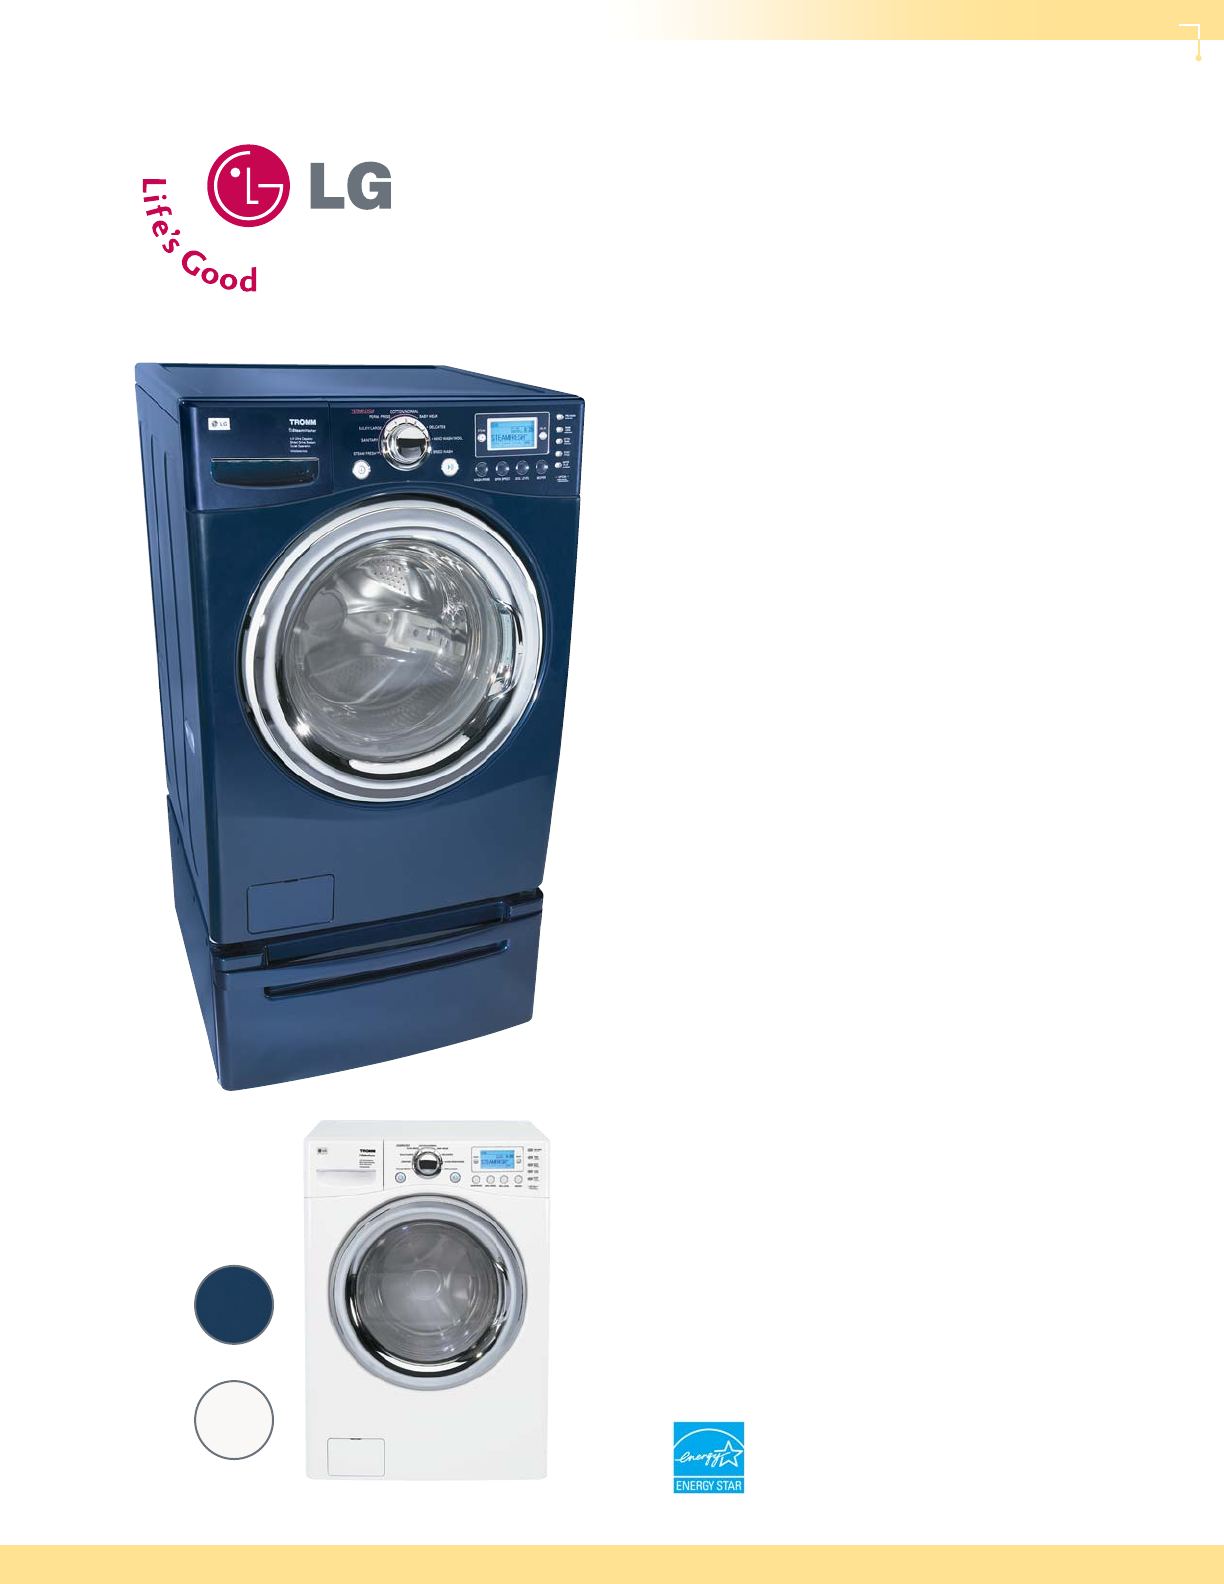 lg electronics washer wm2688h user guide manualsonline com rh fitness manualsonline com LG Dryer Repair Manual lg tromm washer and dryer user manual